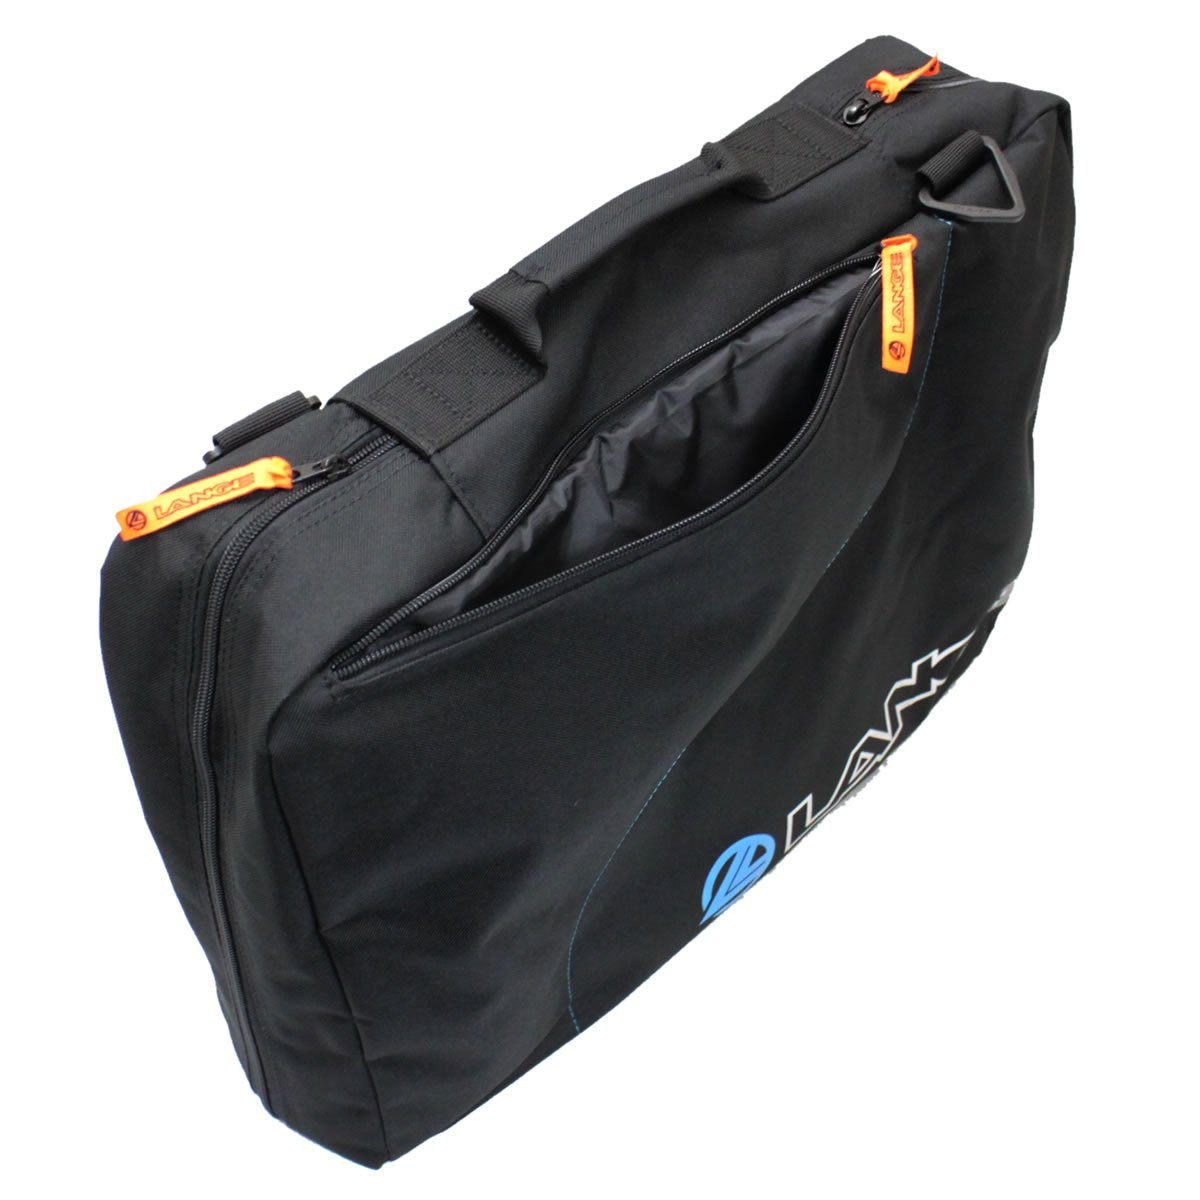 ON chaussures de ski//snowboard pour sixtyniner skiboot cover bag